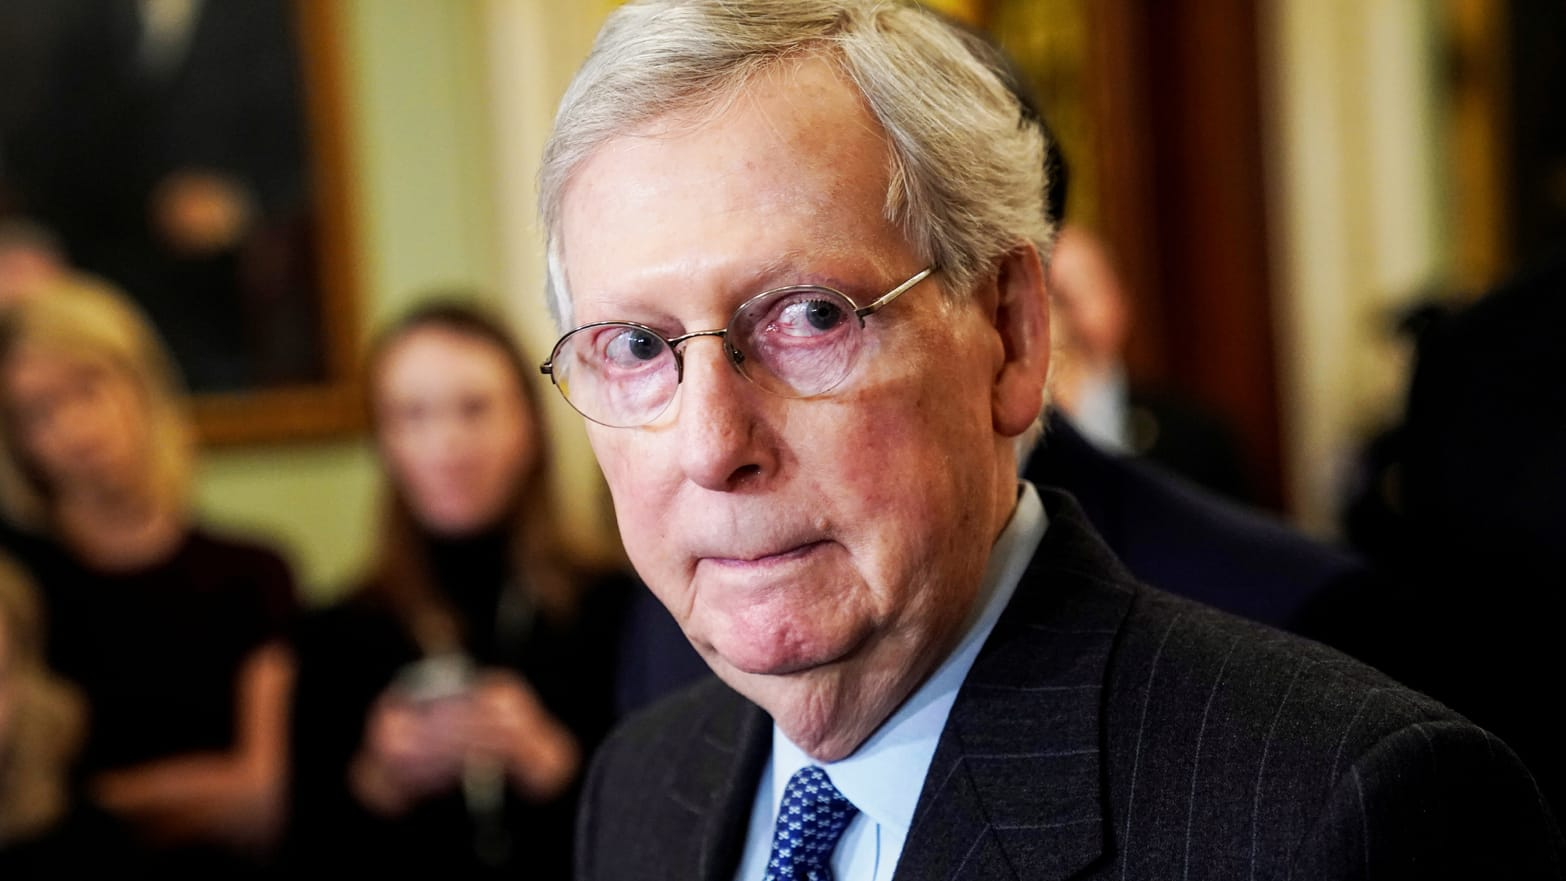 Trump Welcomes Foreign Election Interference—but McConnell Makes It More Likely